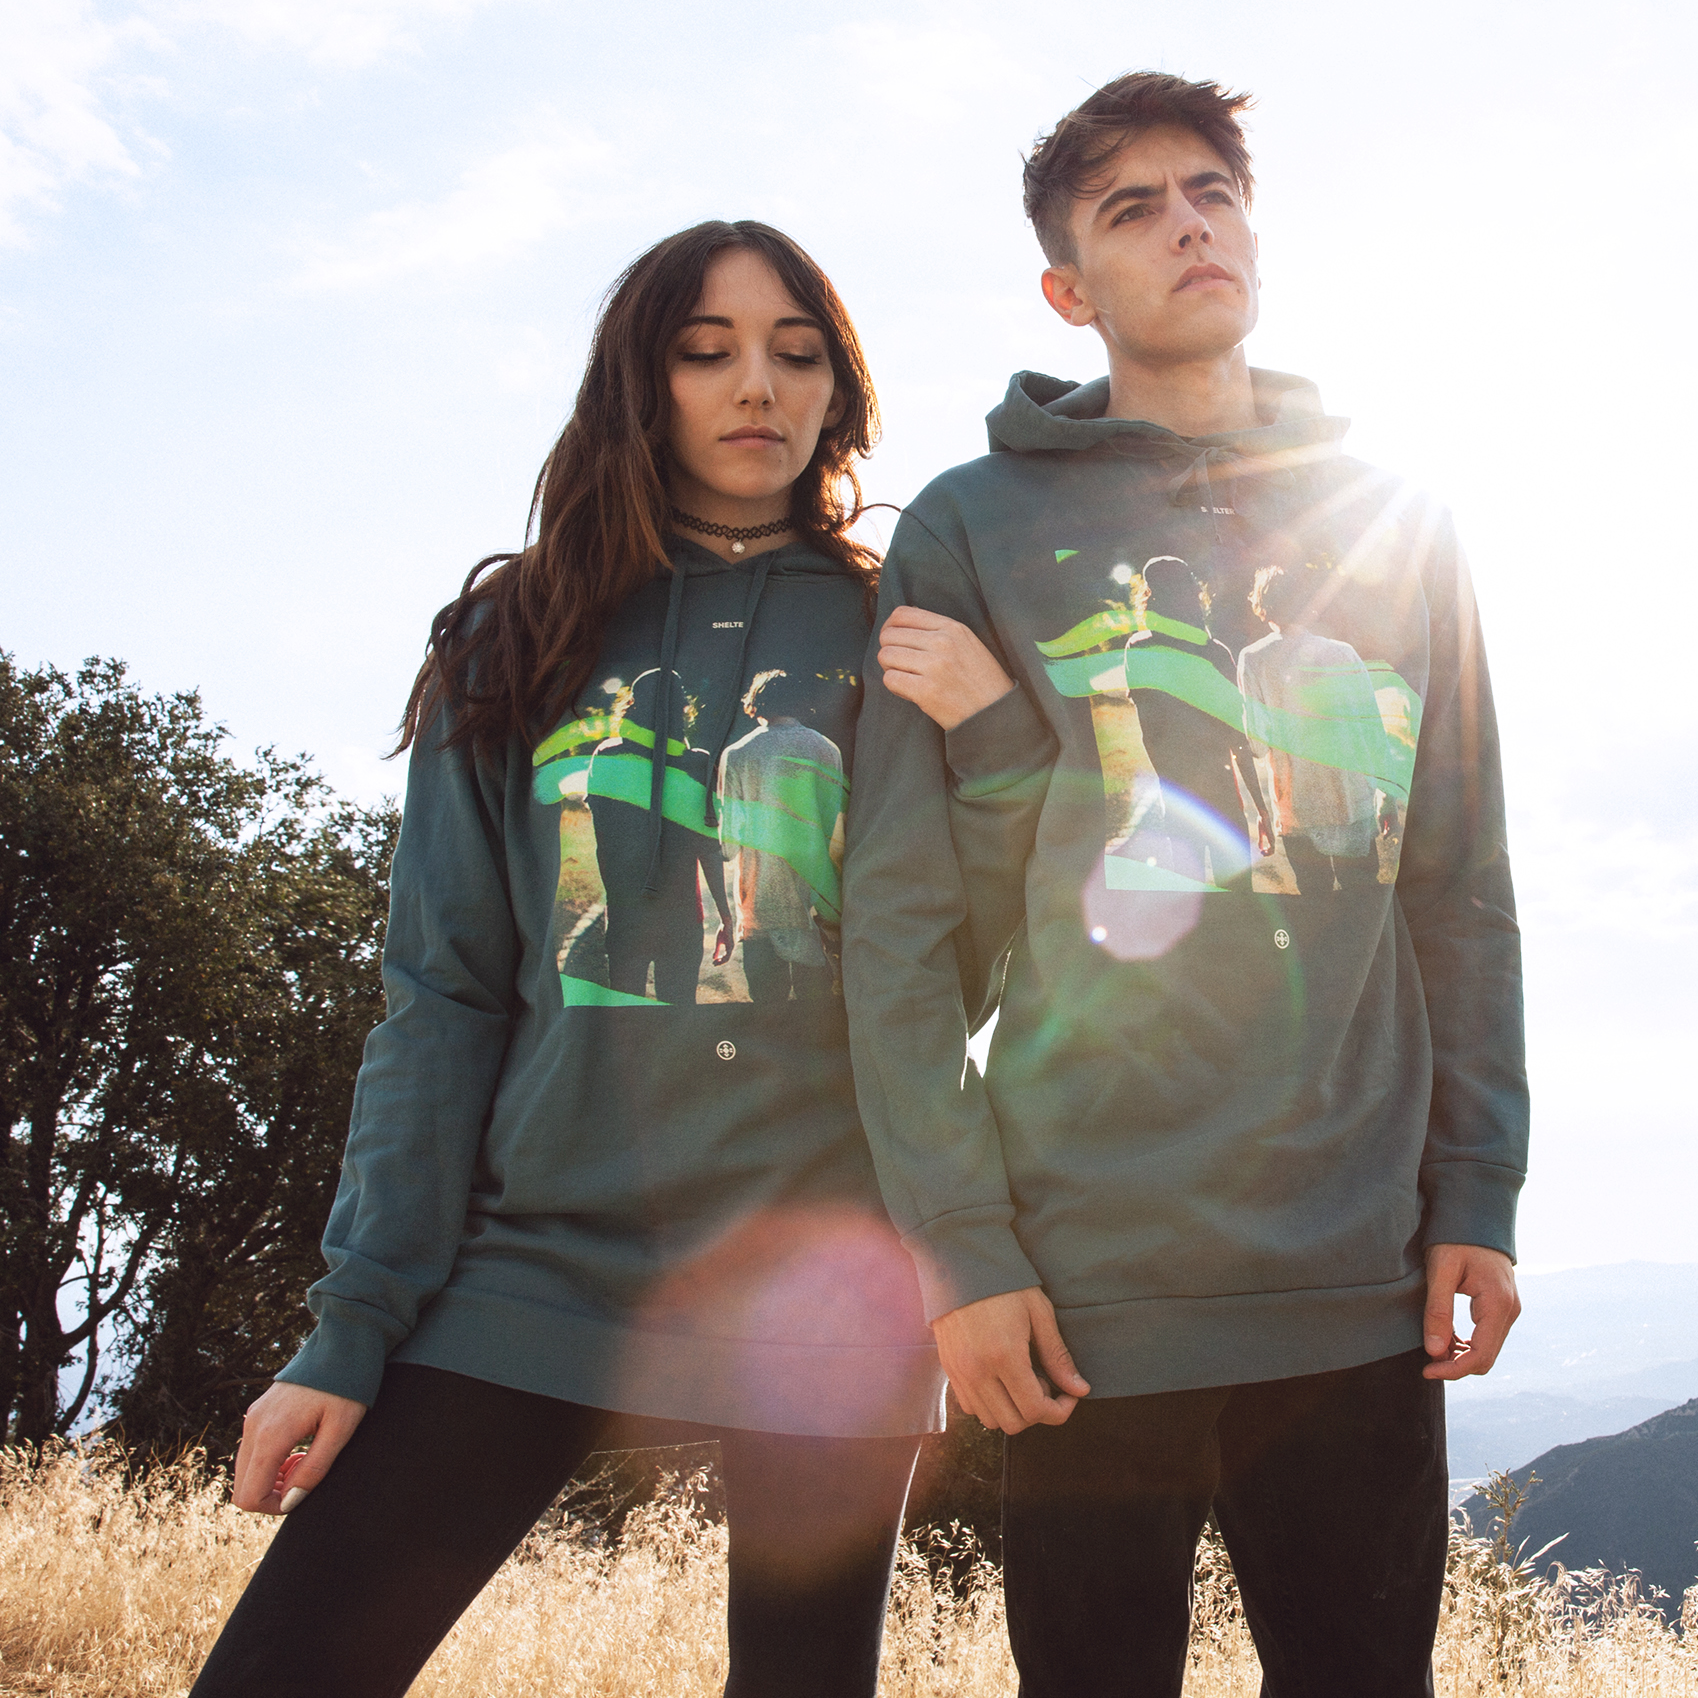 Longline pullover hoodies from the Shelter merch collection